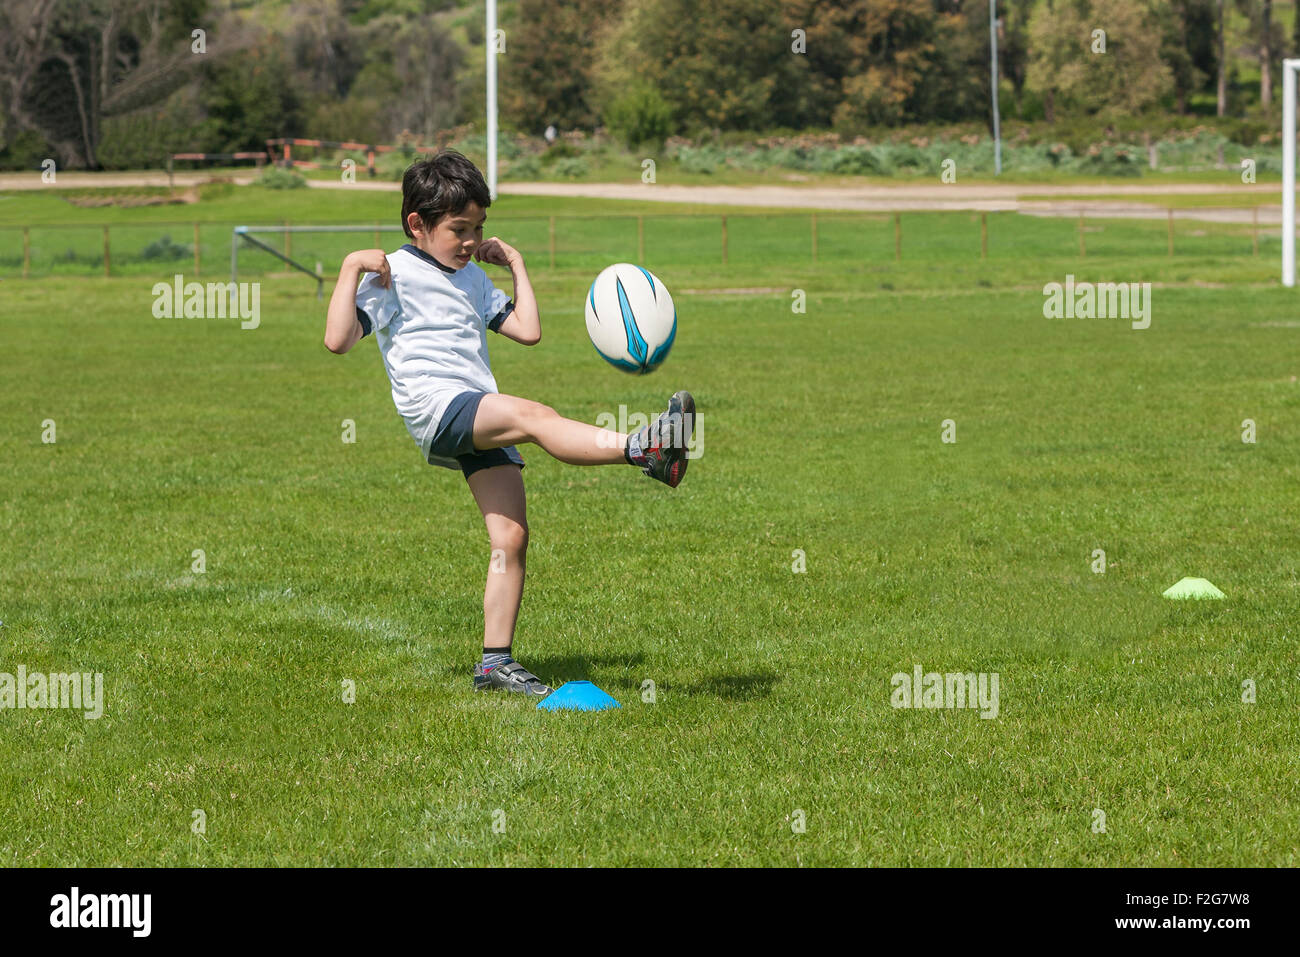 Rugbyman child shootig the ball Stock Photo